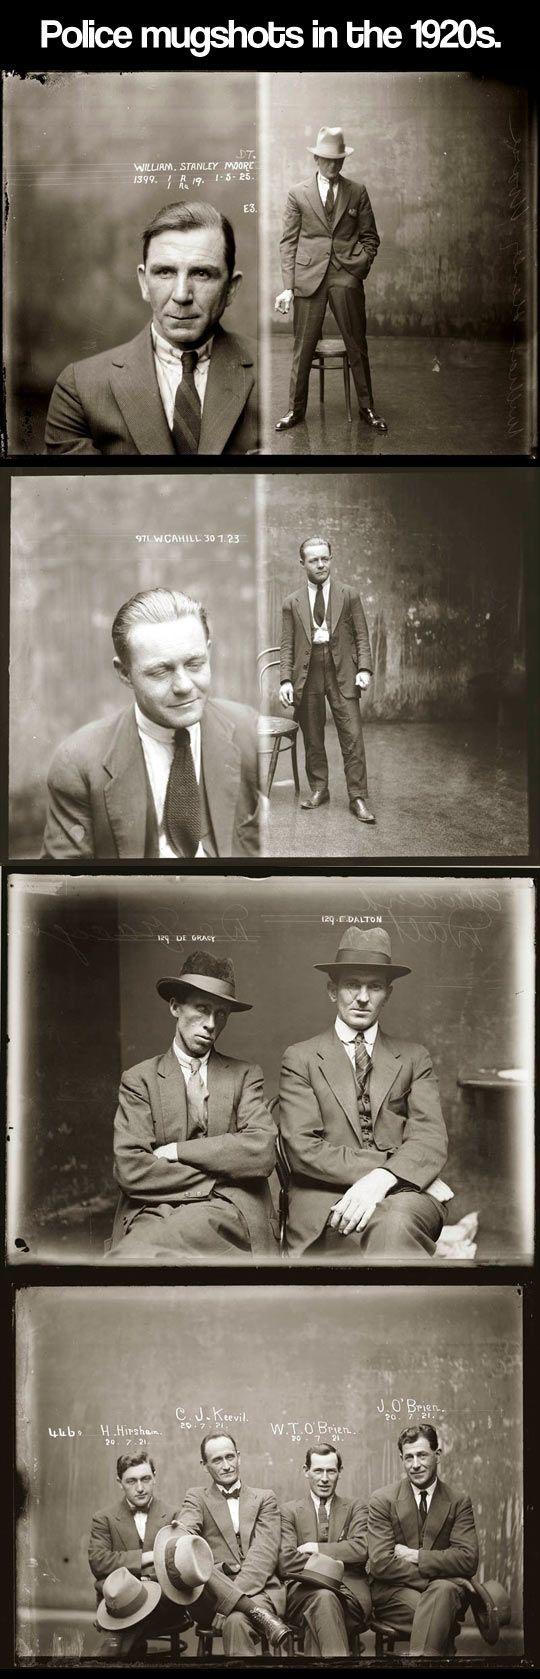 Police mugshots in the 1920s…